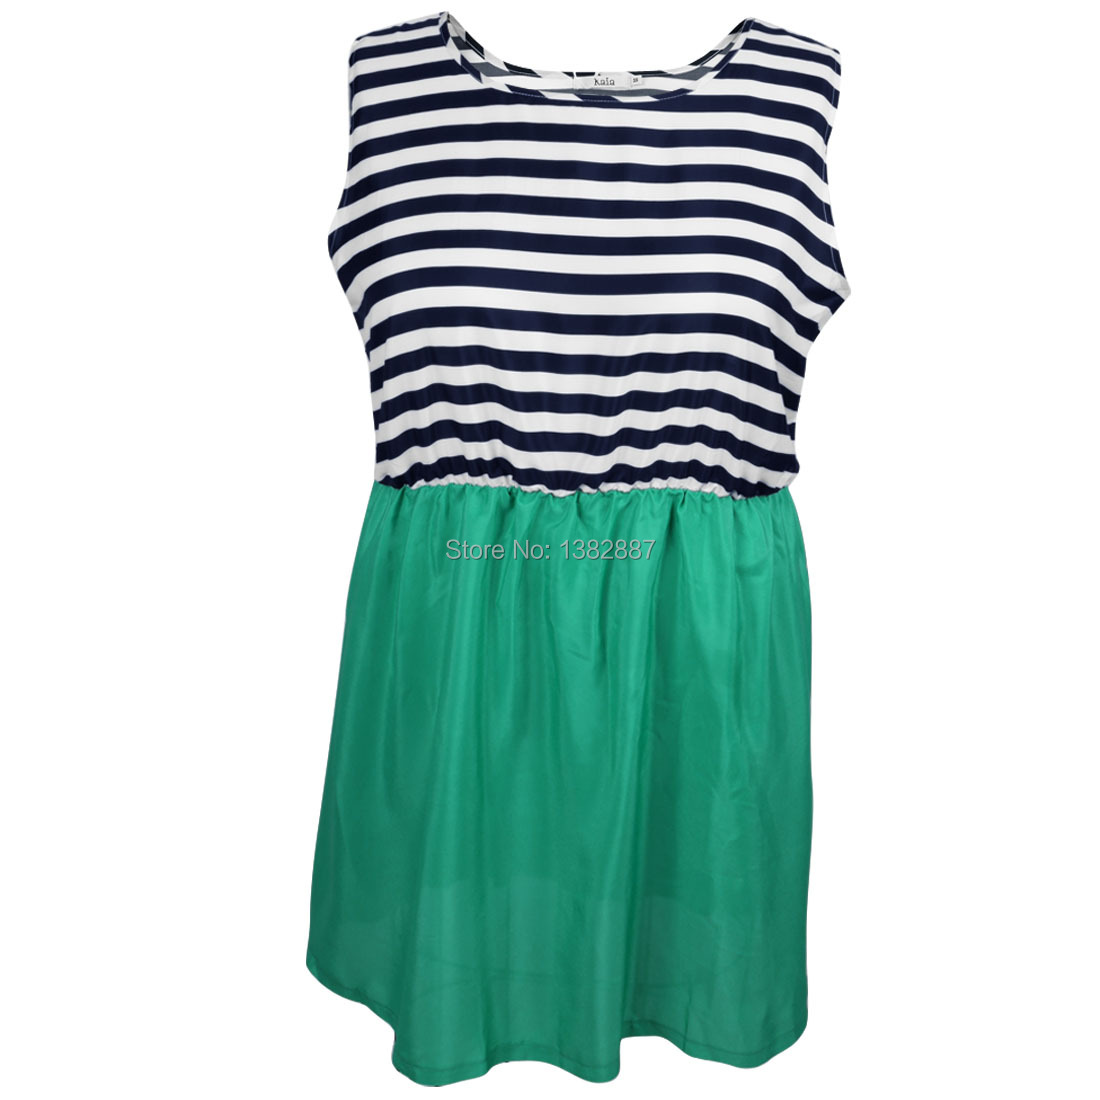 Compare Prices on Casual Teal Dress- Online Shopping/Buy Low Price ...